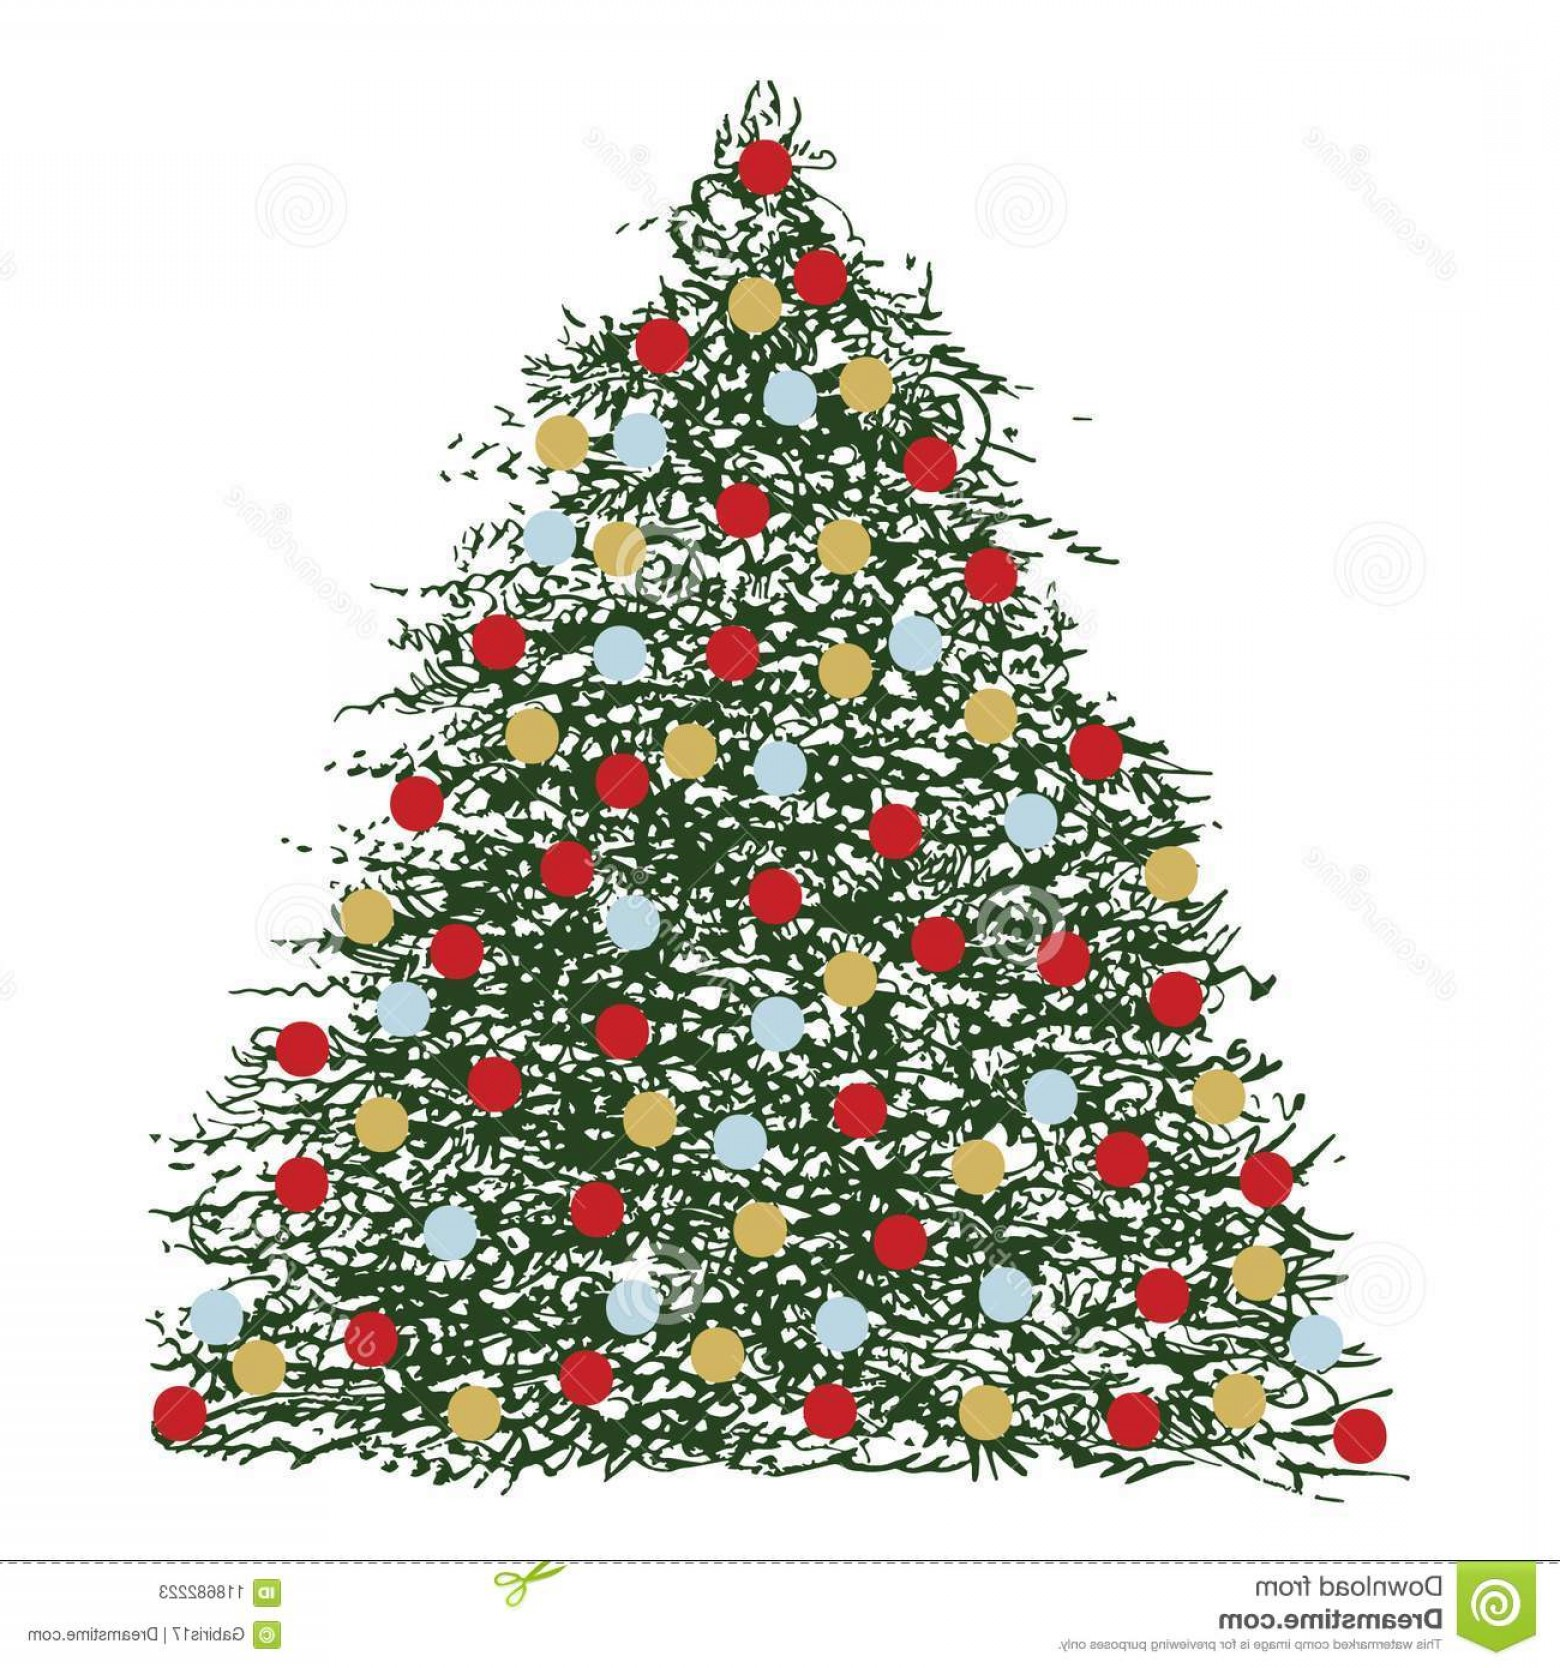 Vector-Based Grayscale Christmas: Manually Generated Brush Ink Based Triangular Decorated Christmas Tree Illustration Remastered Digitally Deep Green Color Image